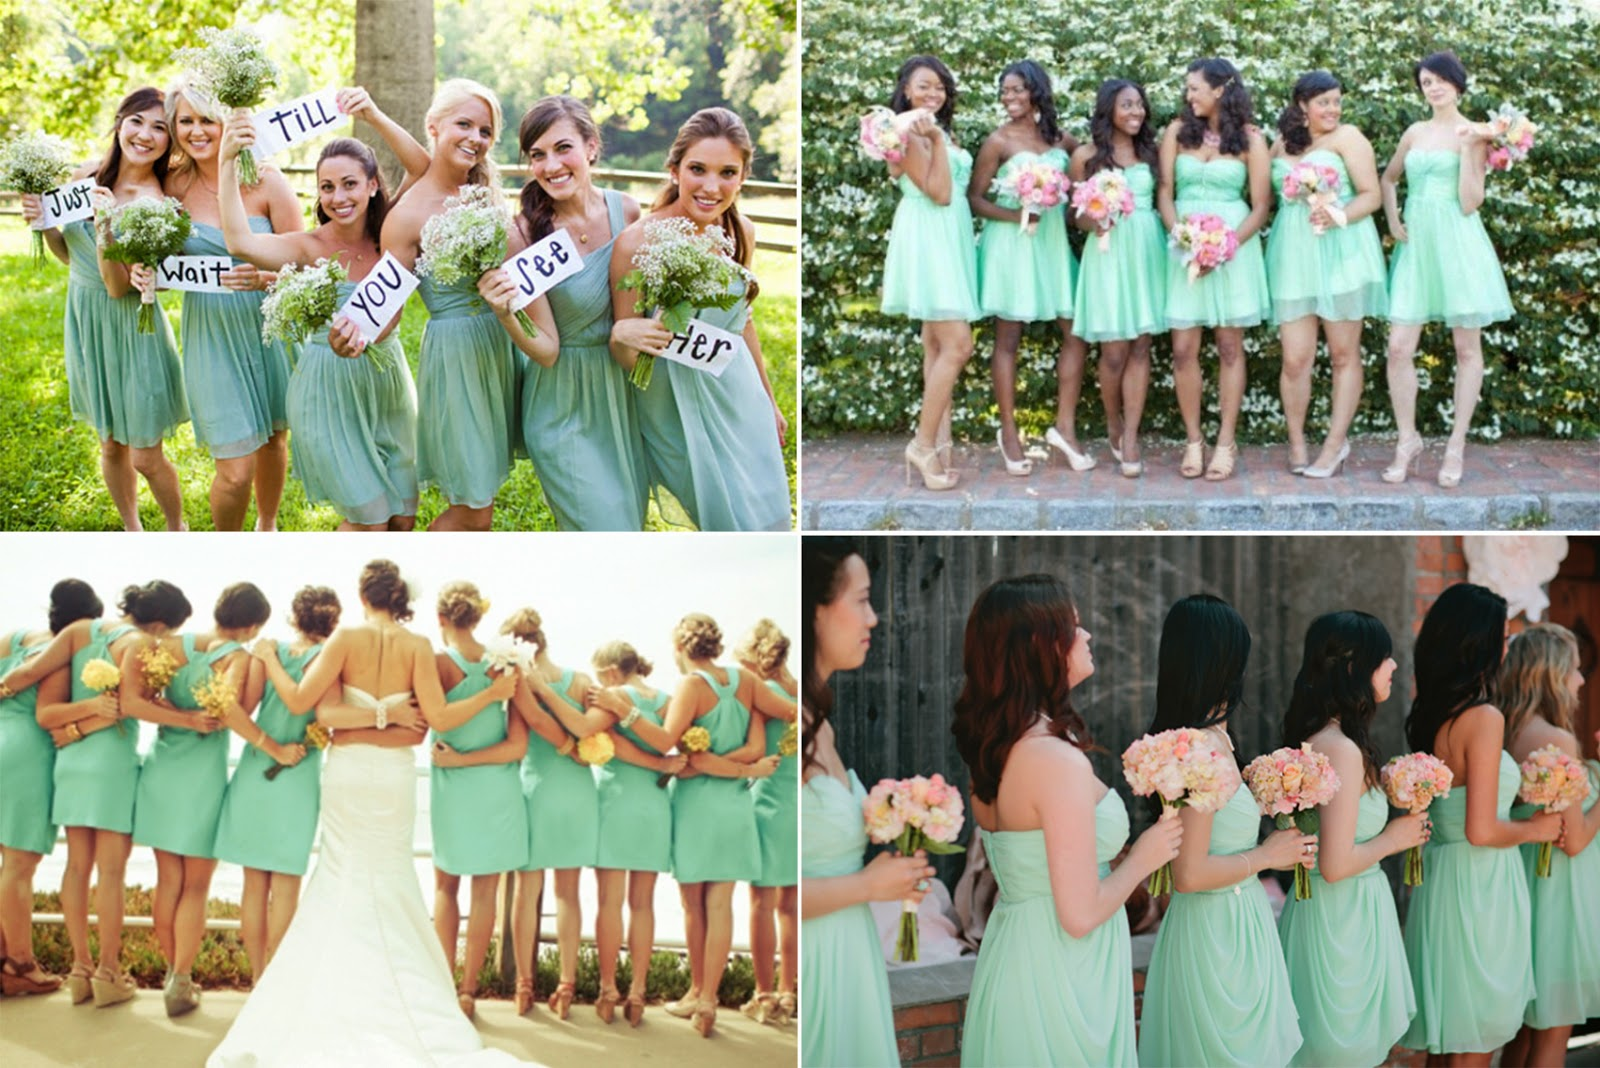 Mint green bridesmaids dress choice image braidsmaid dress the best wedding dresses for young bridesmaid dresses mint green uk bridesmaid dresses mint green uk ombrellifo Gallery